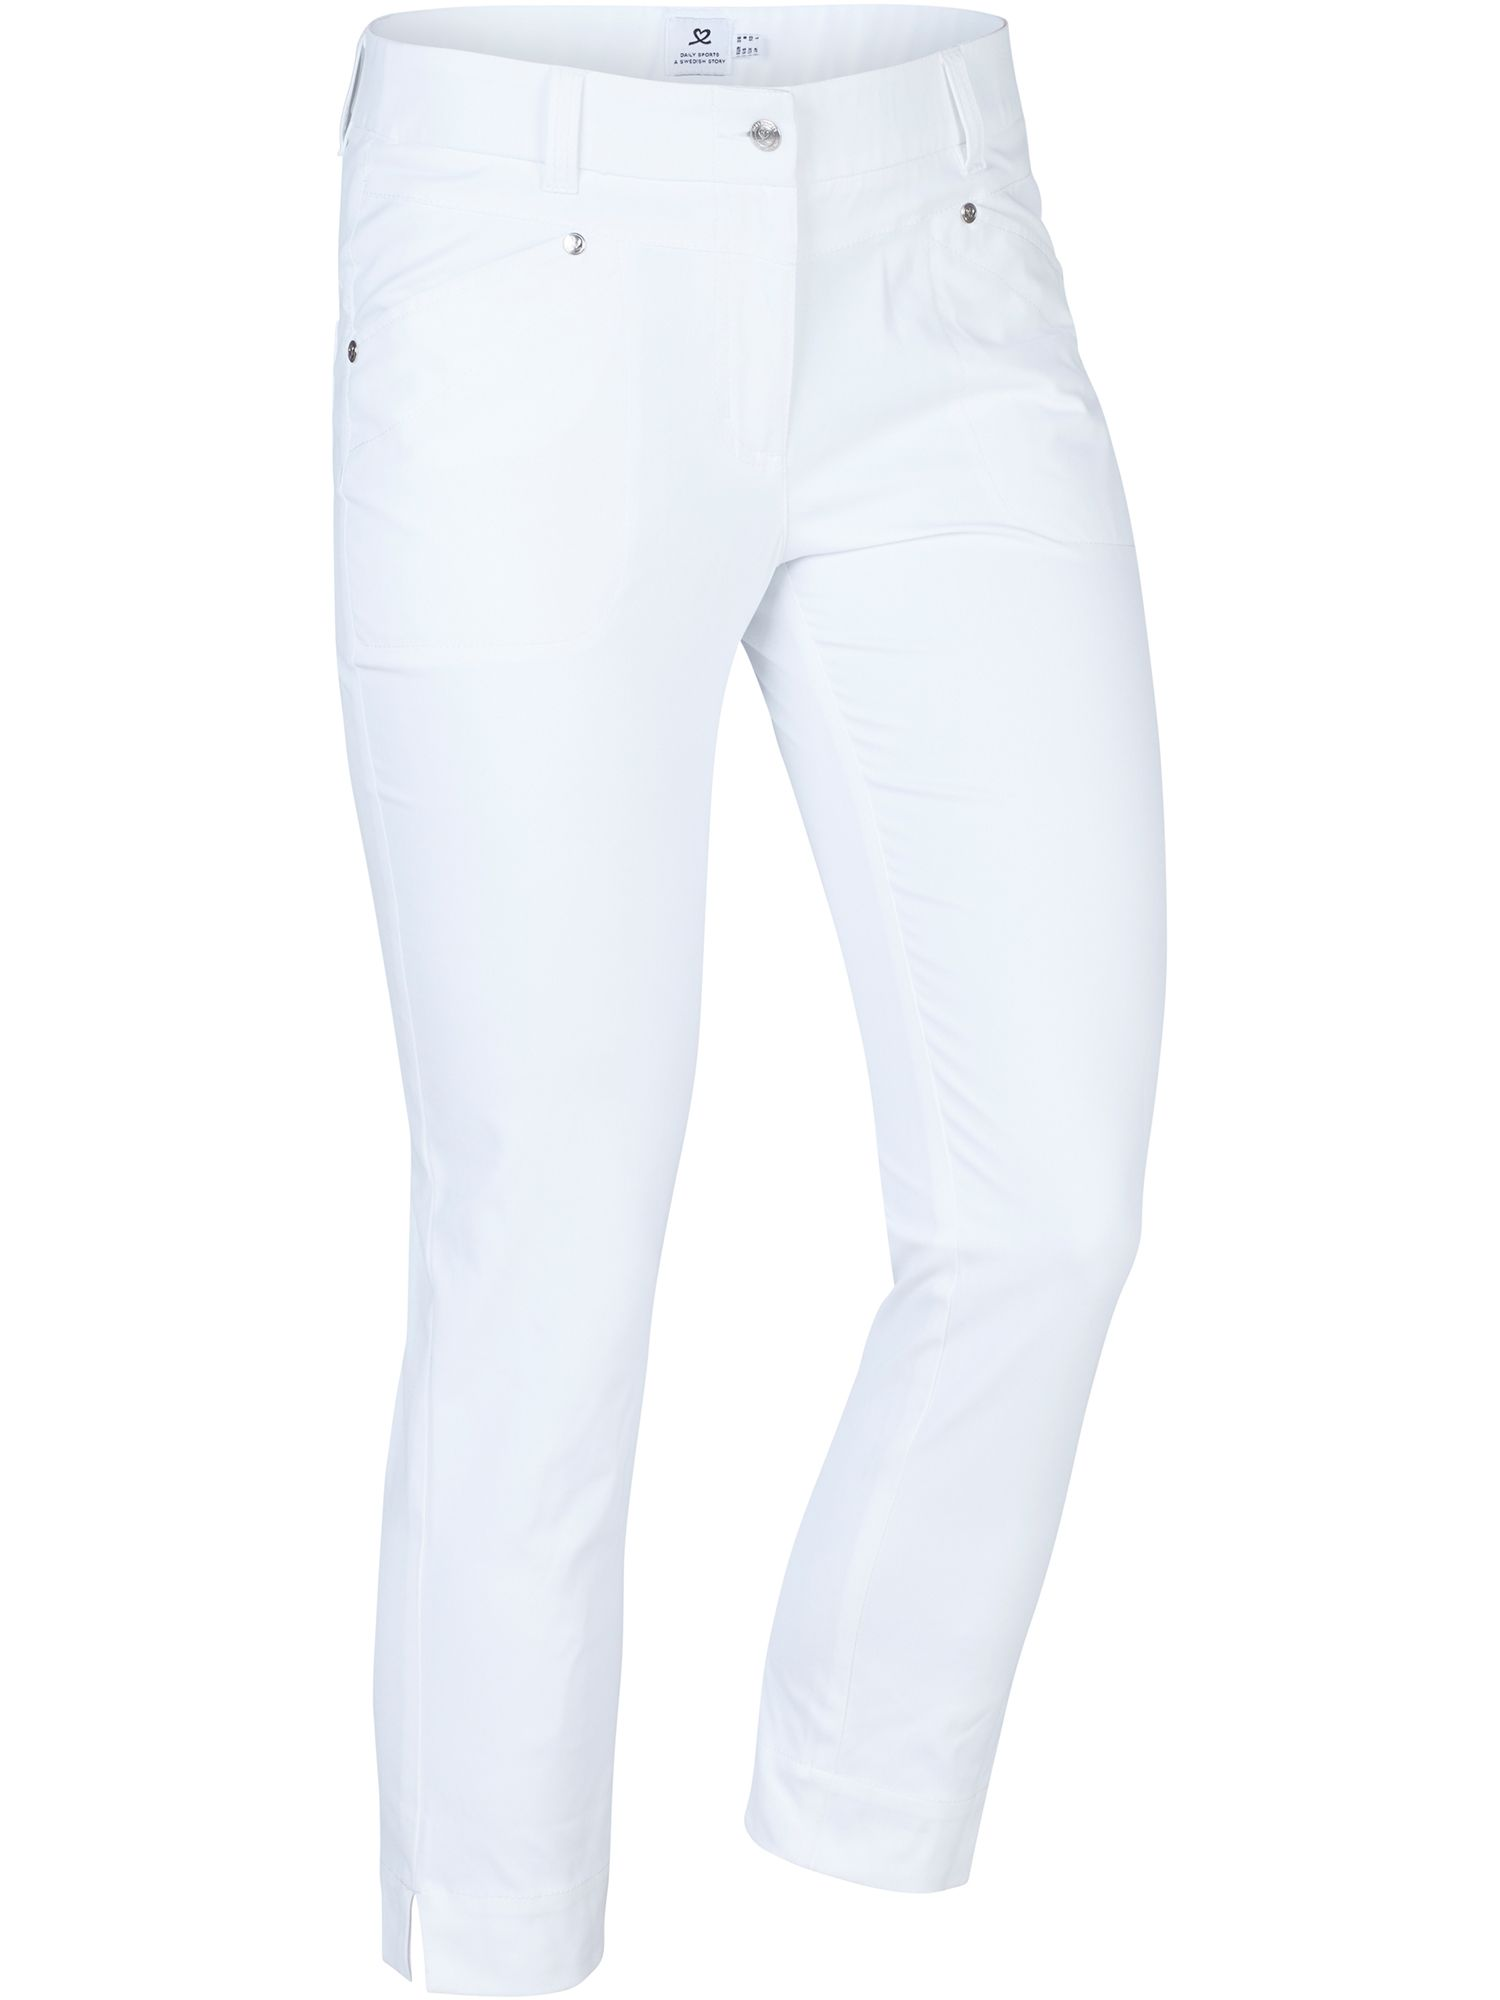 Daily Sports Lyric High Water Trousers, White